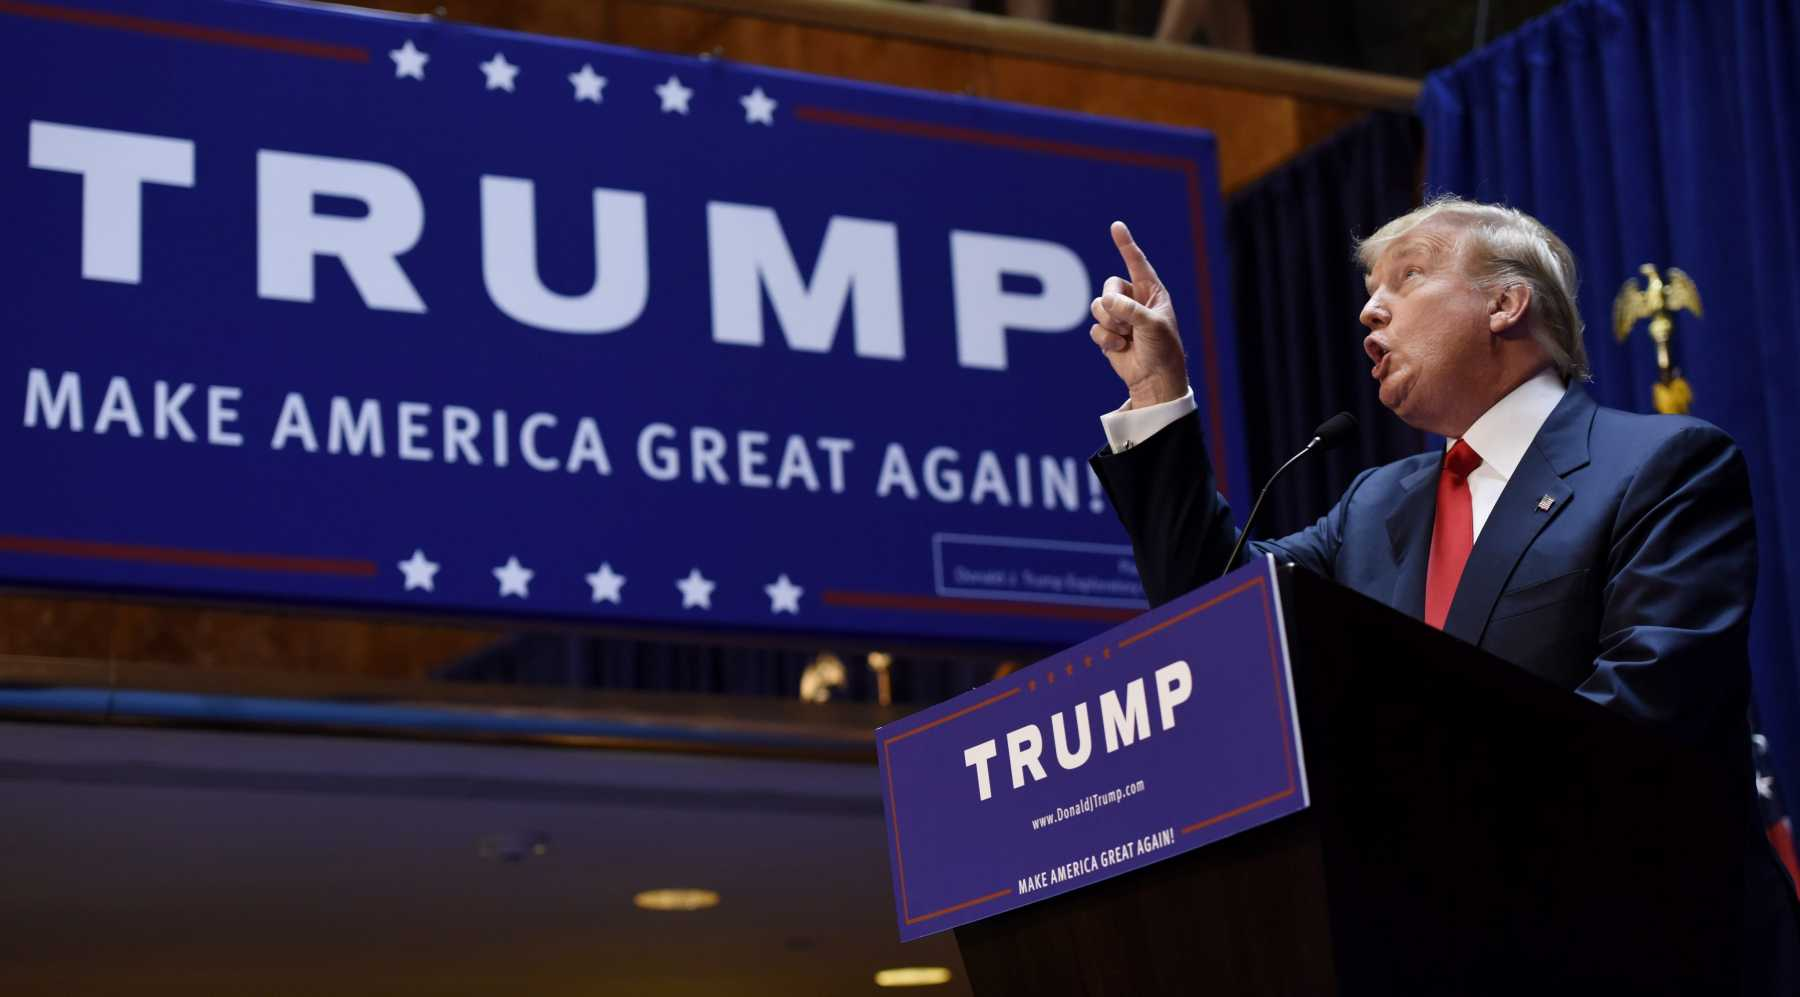 Donald Trump Detours From Debate, Will Host Veterans Benefit And Enters No Spin Zone | Donald Trump